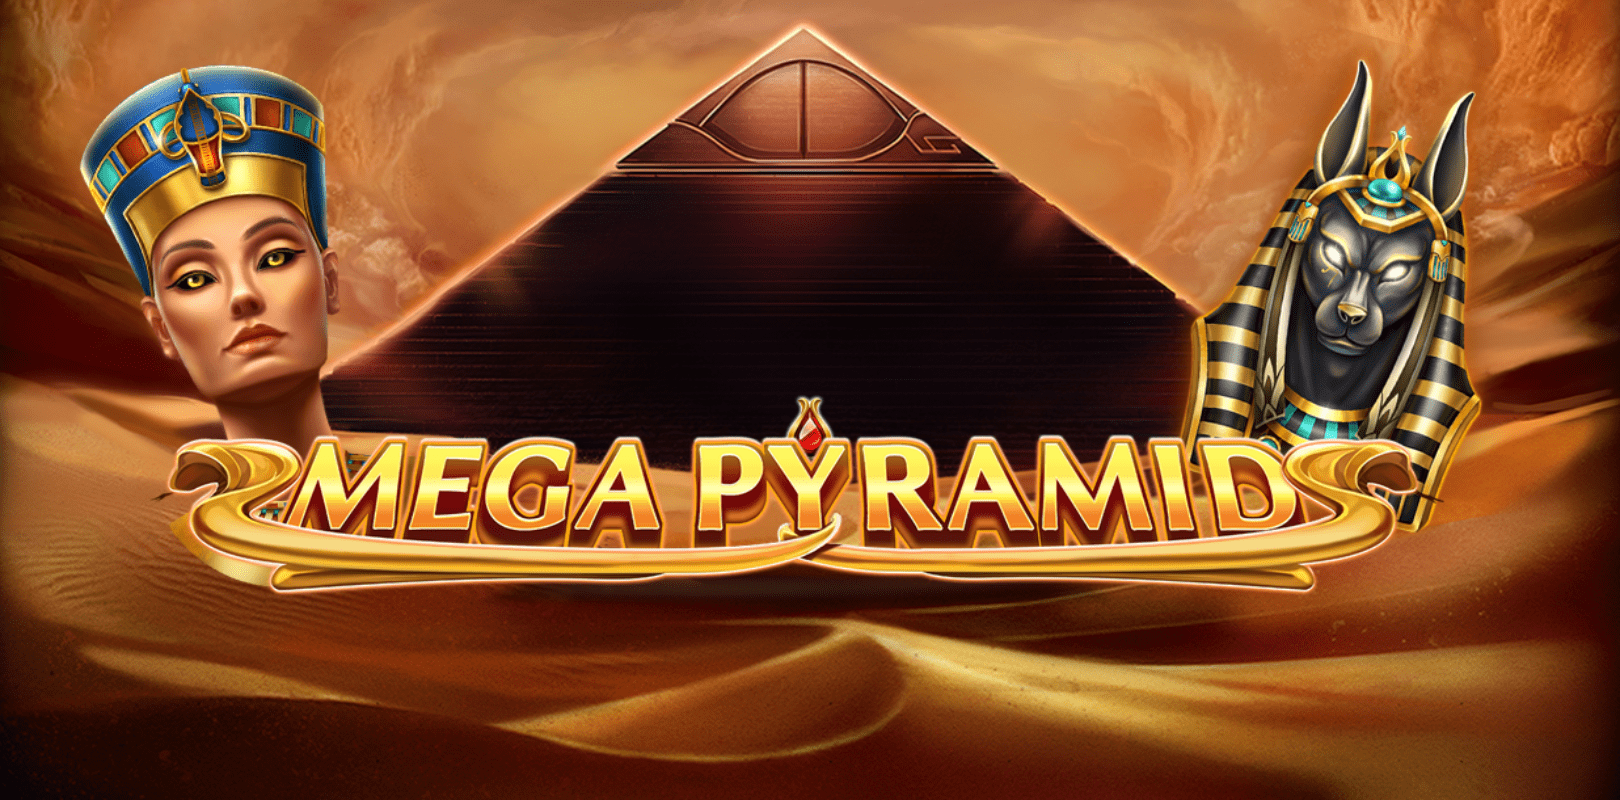 Mega Pyramid Online Slot Machine